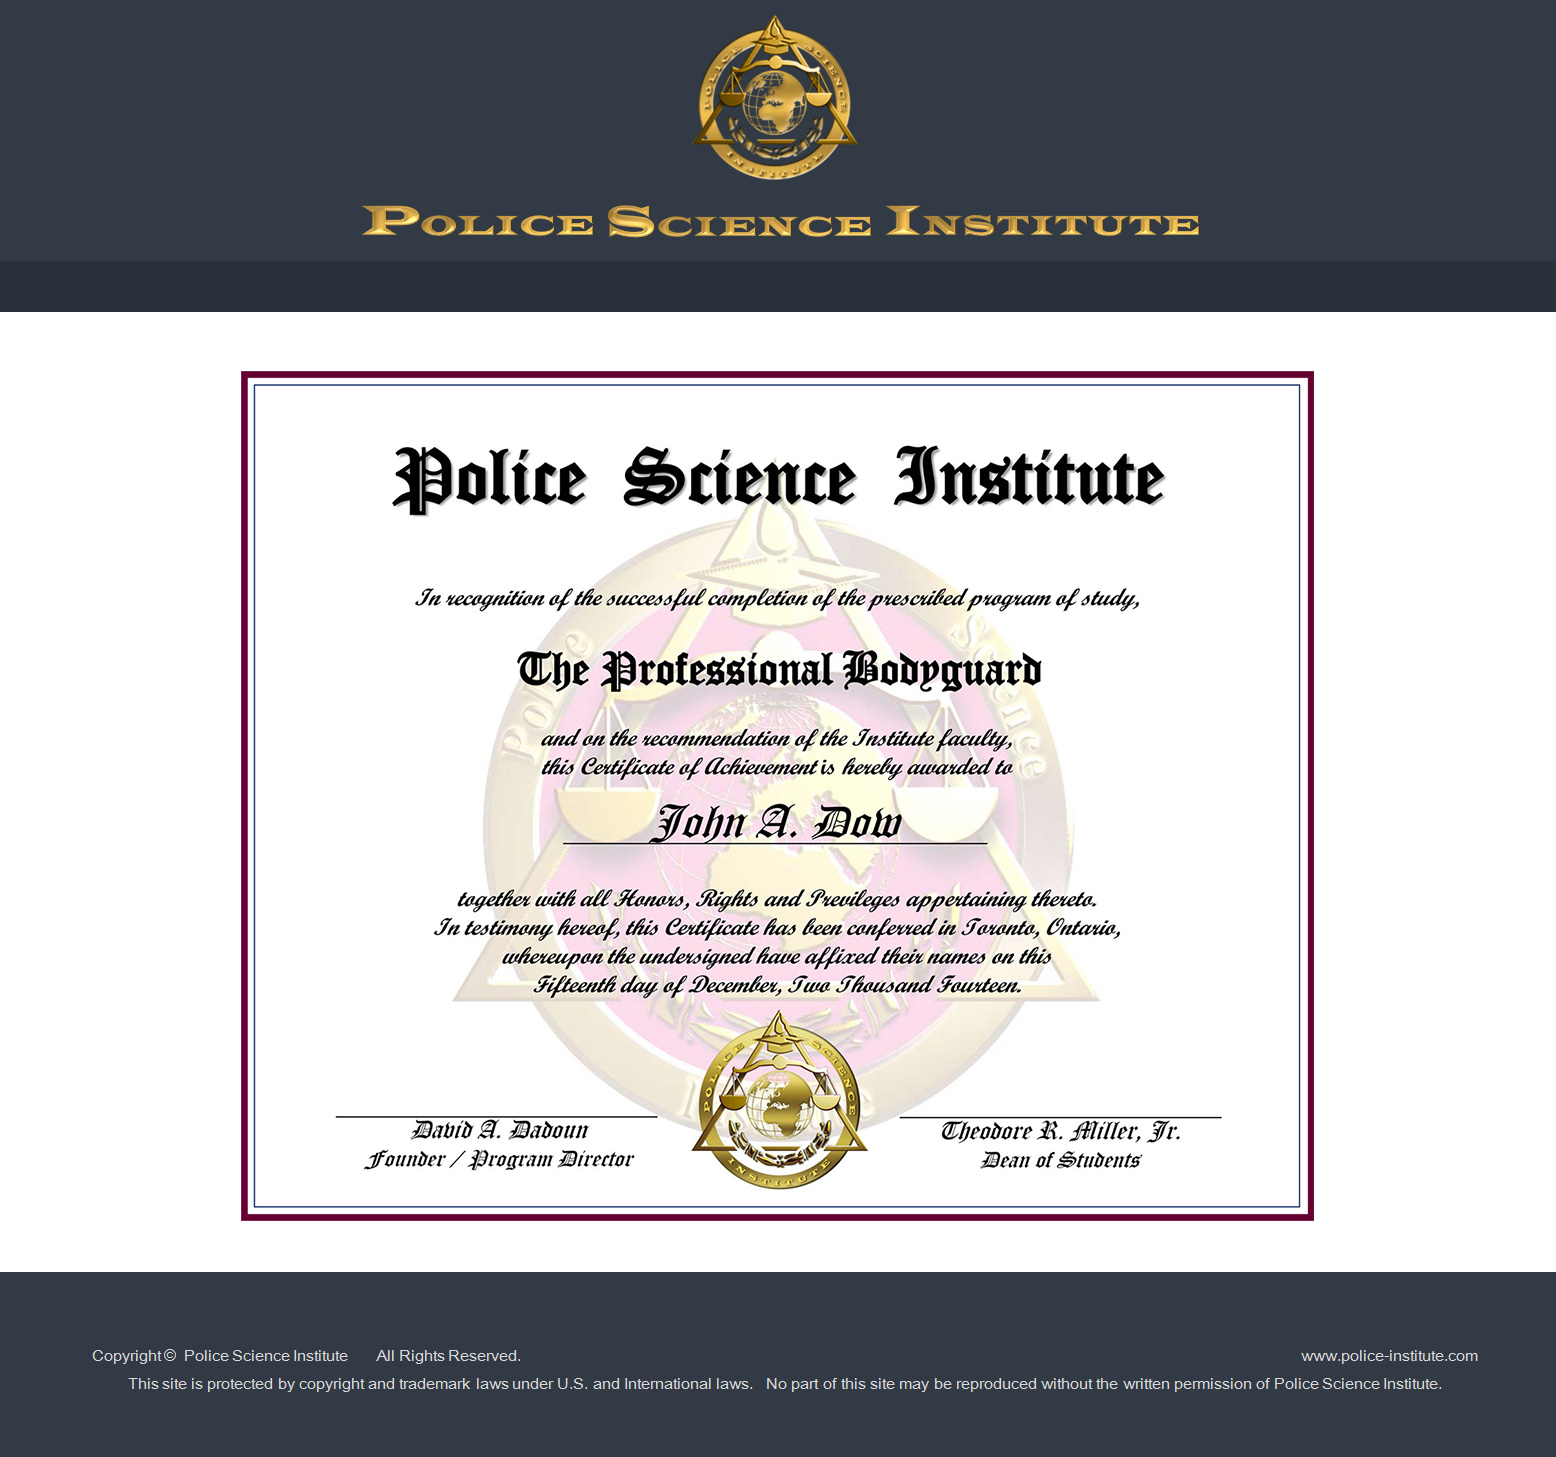 vip protection training courses at police science institute